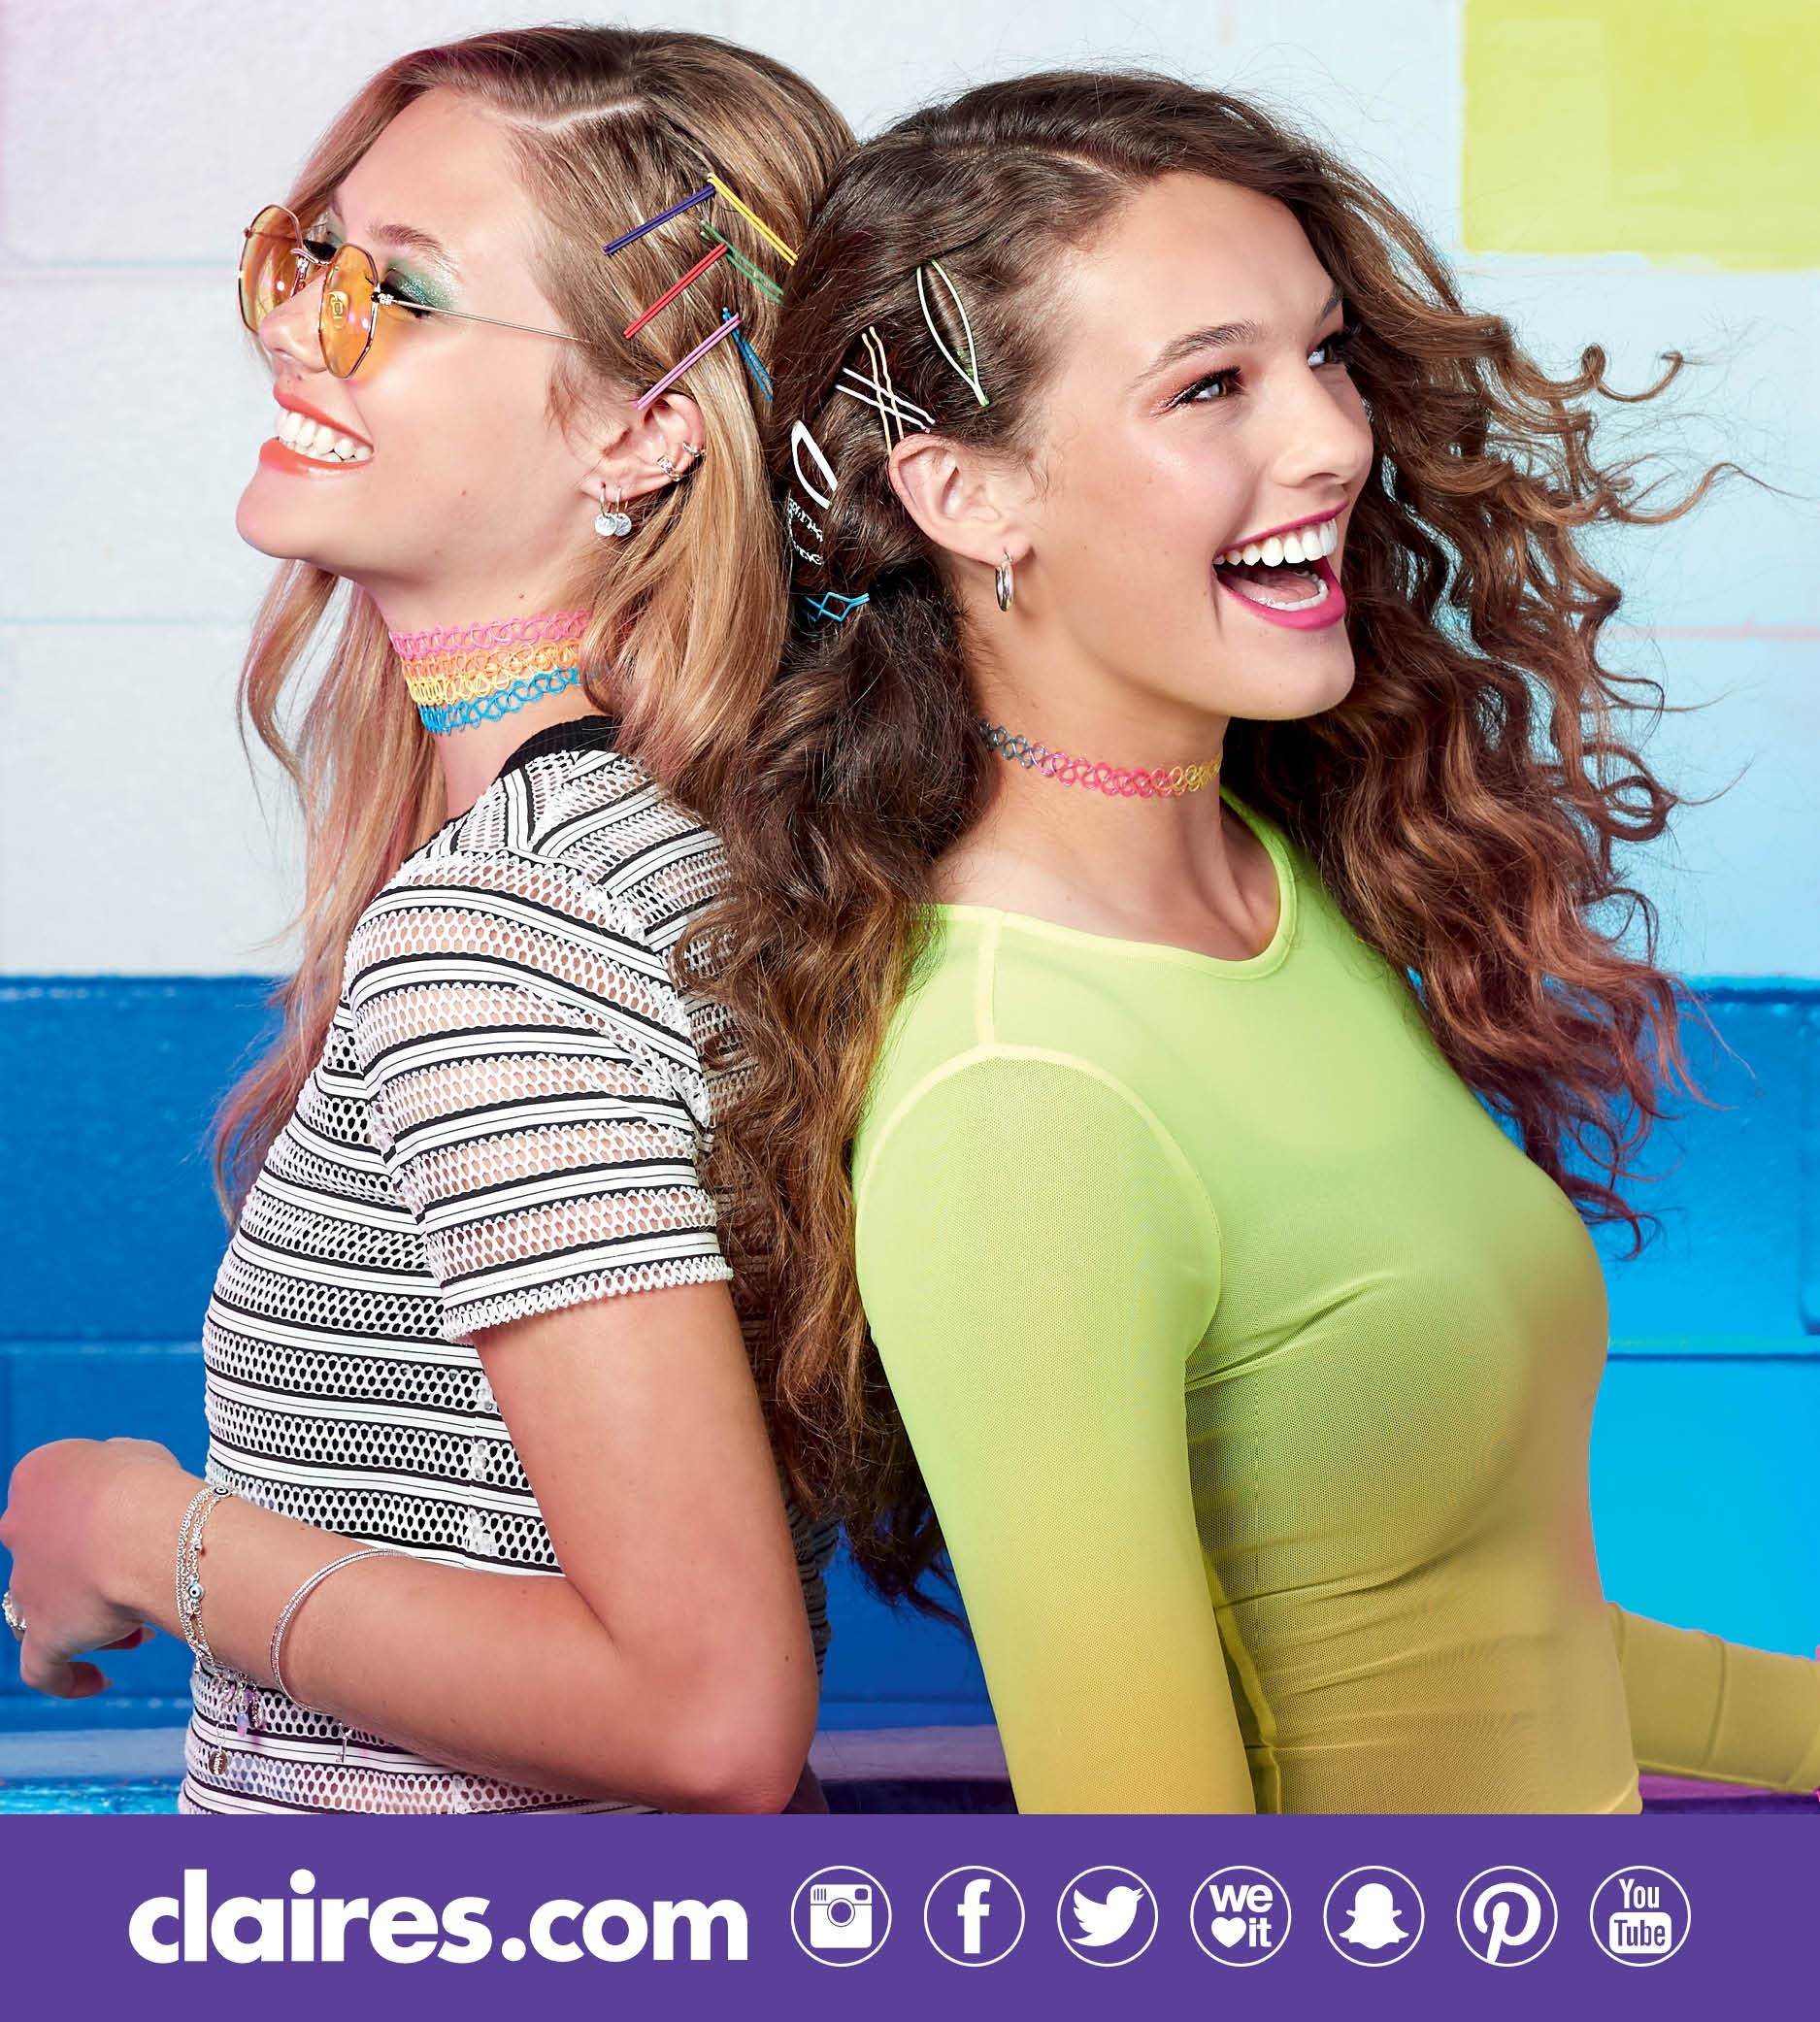 claire's haircare clearance